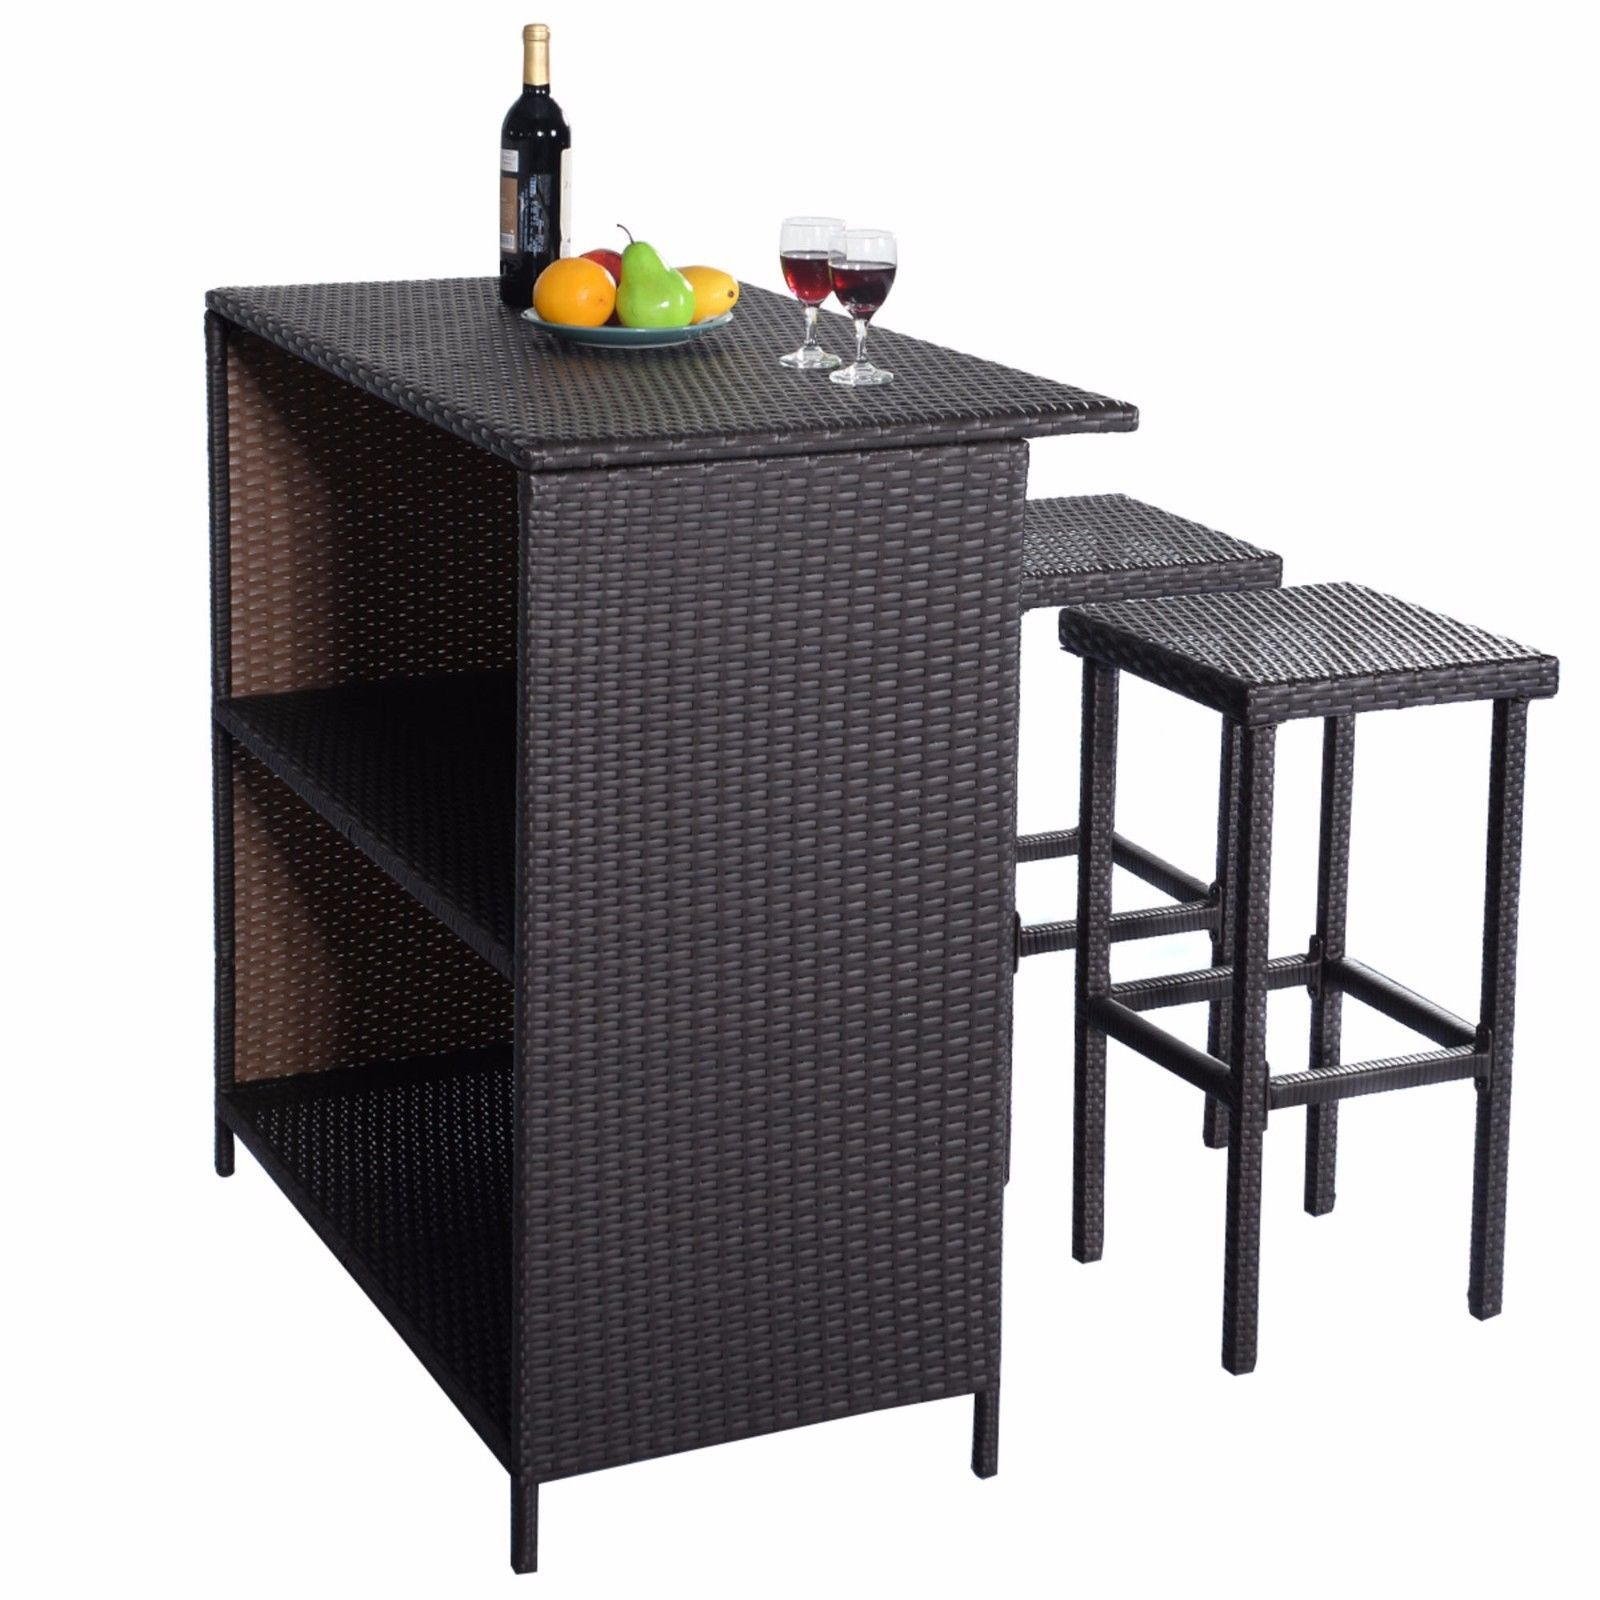 3 pc outdoor rattan wicker bar set patio and 50 similar items. Black Bedroom Furniture Sets. Home Design Ideas